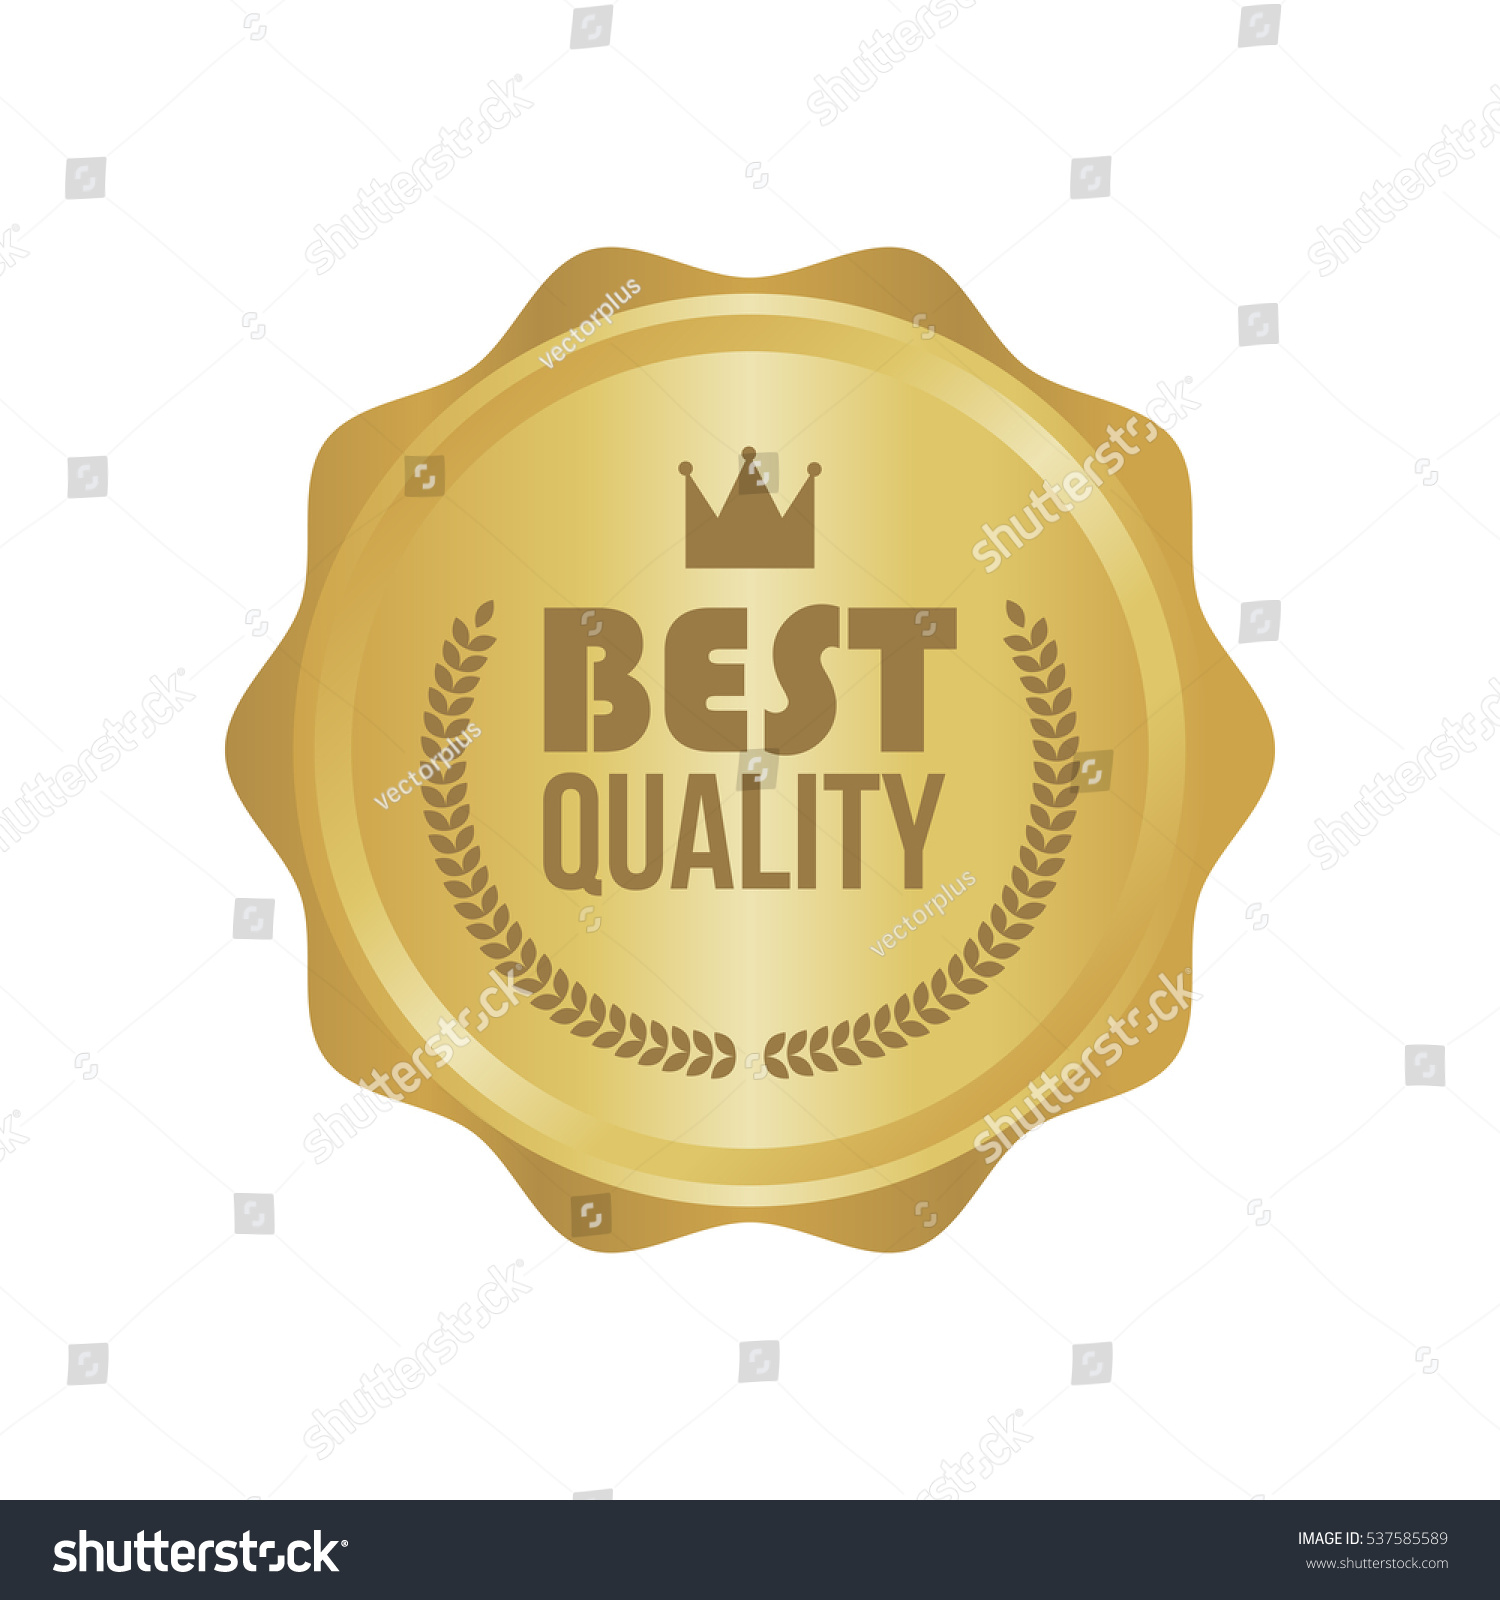 illustration vector sign depositphotos label stock best round quality gold